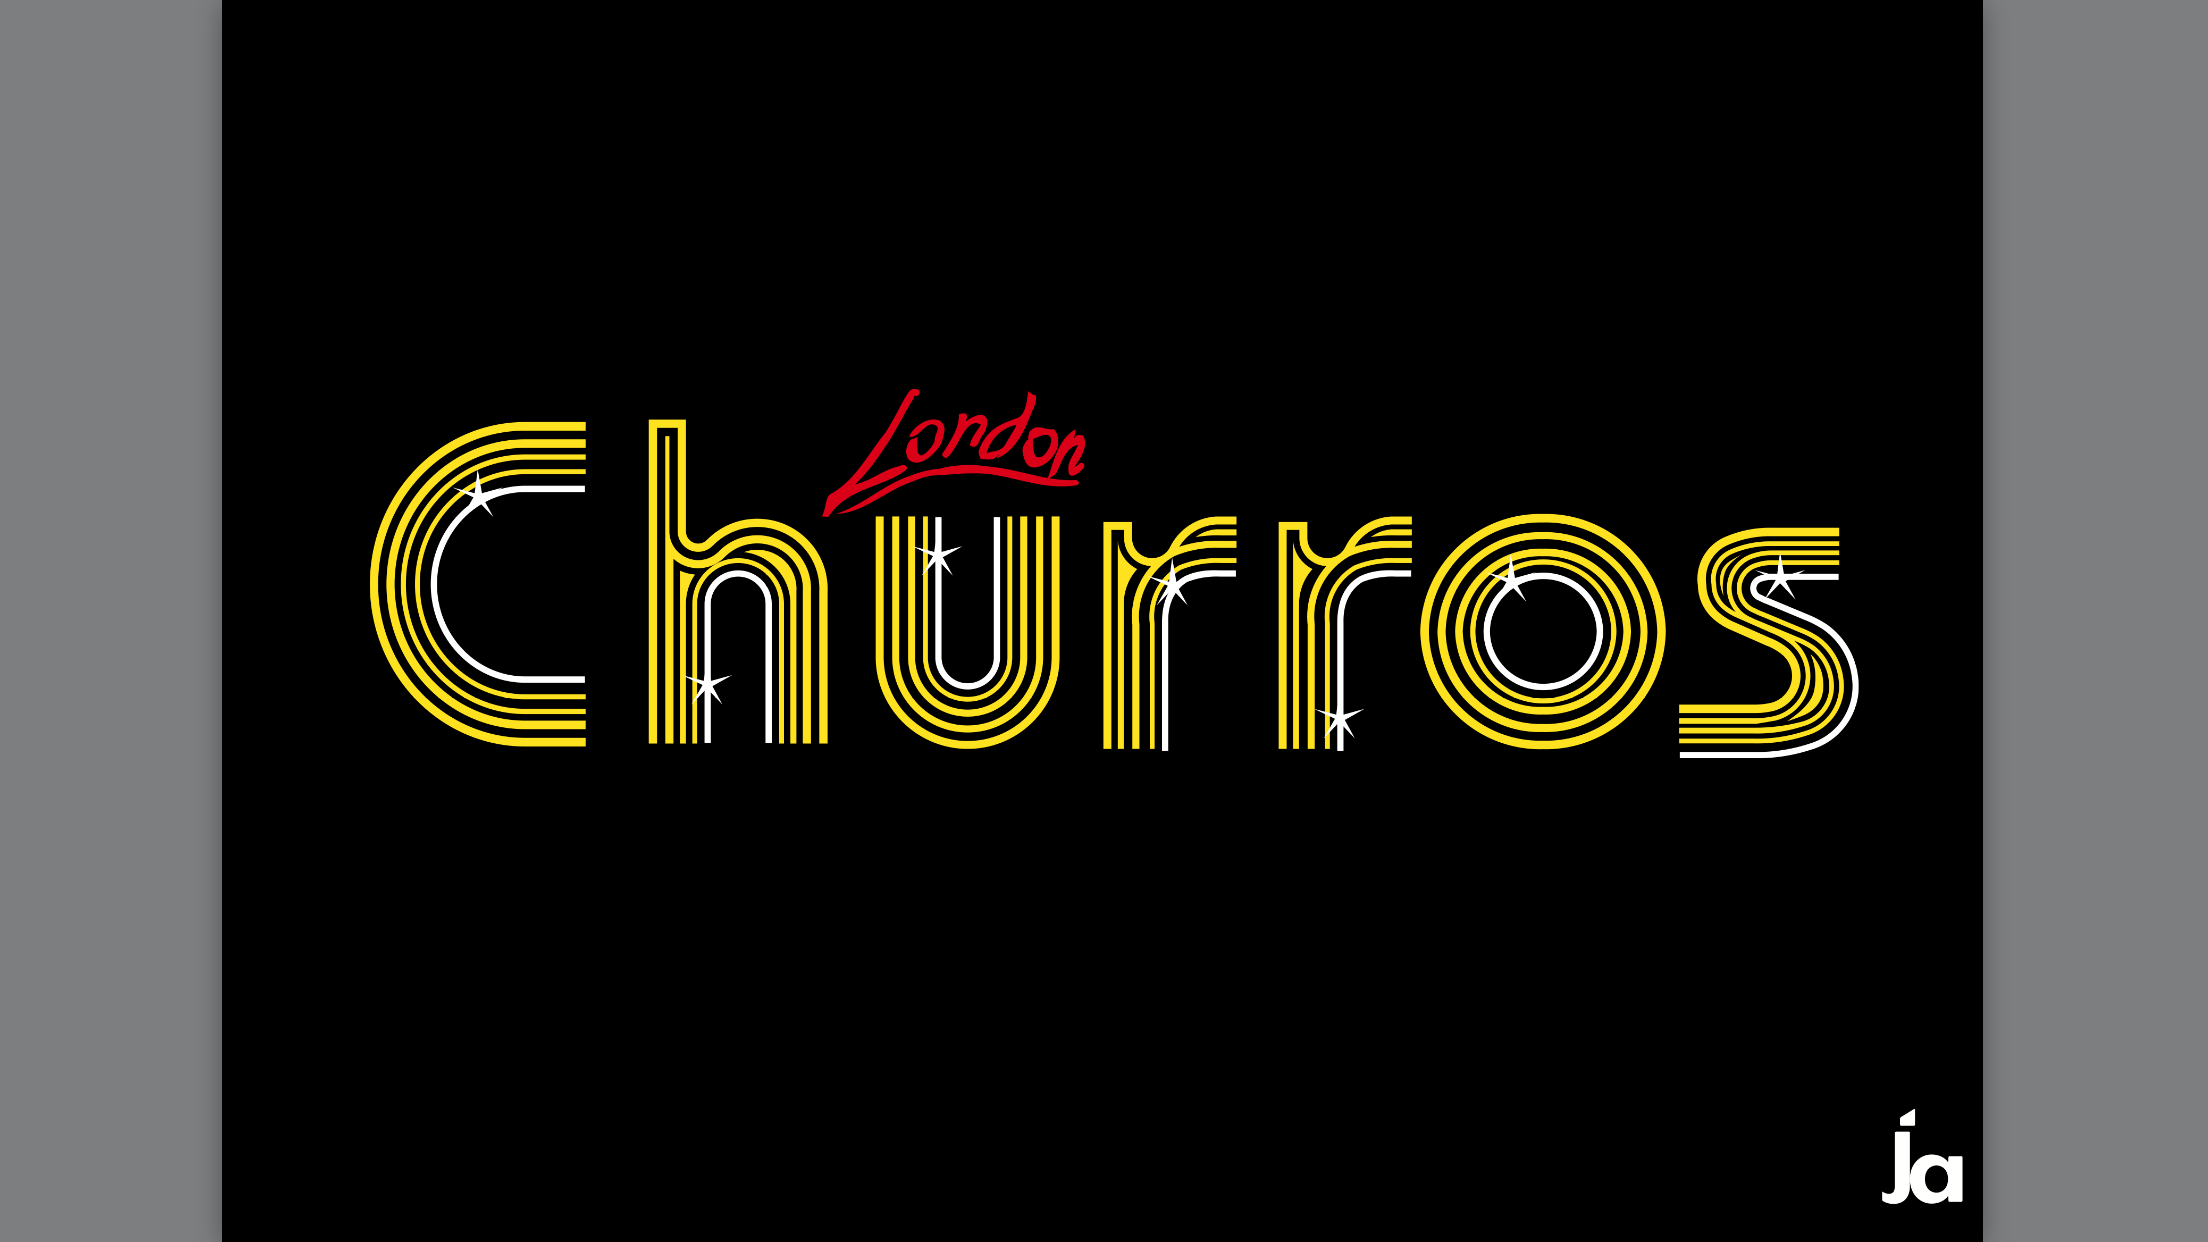 Churros London (Churros Camden Ltd)